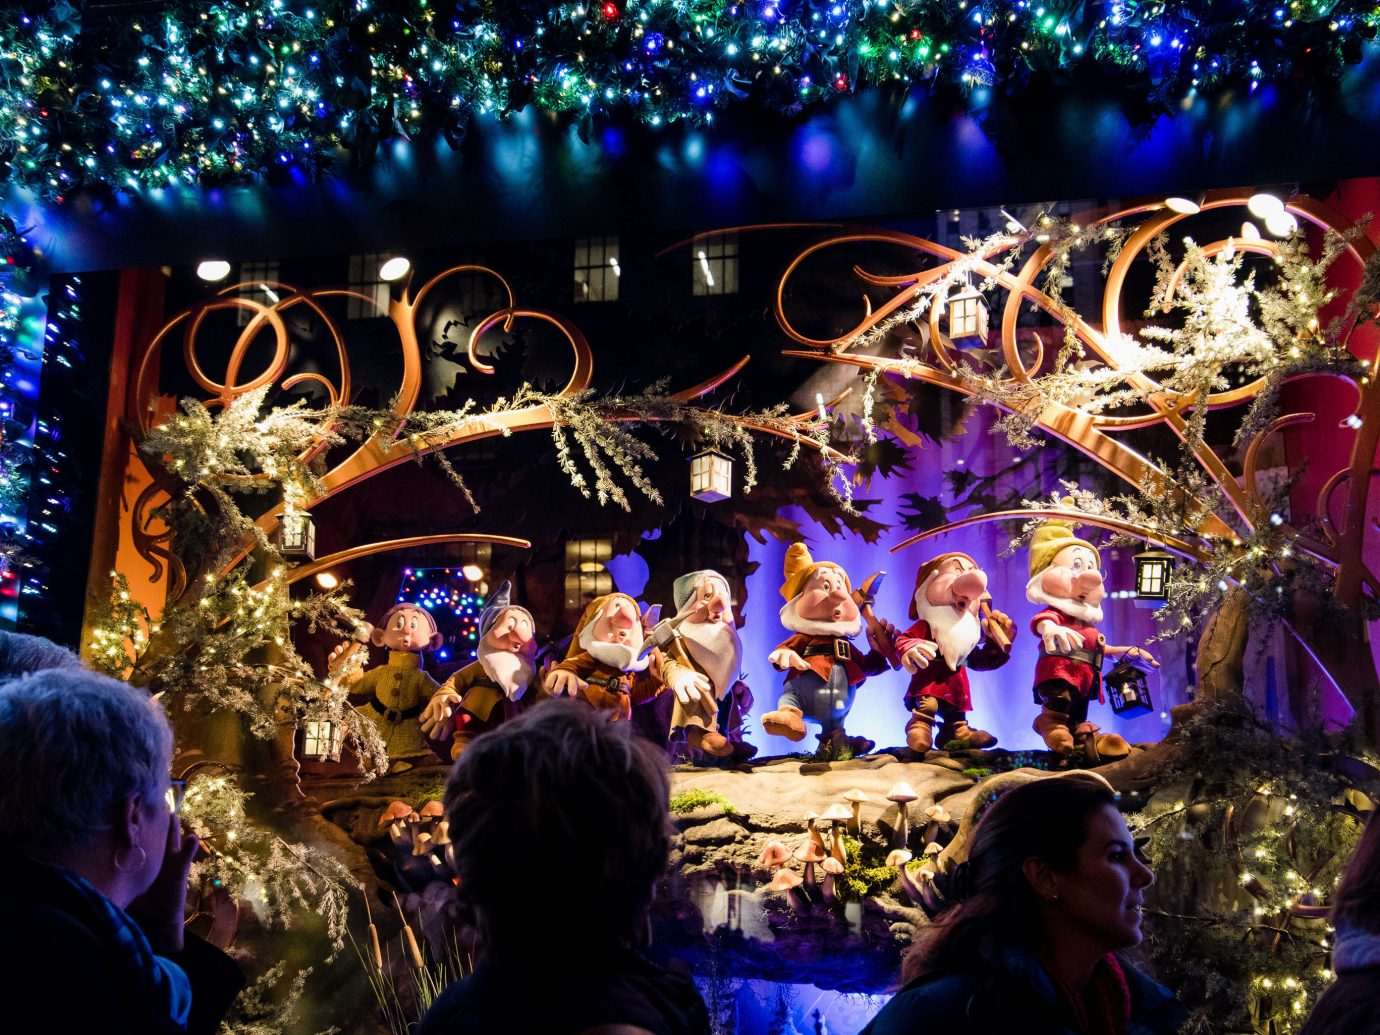 Offbeat Winter person christmas decoration christmas lights Entertainment event lighting Christmas festival nativity scene stage decor fête tradition night musical theatre holiday theatrical scenery recreation decorated crowd